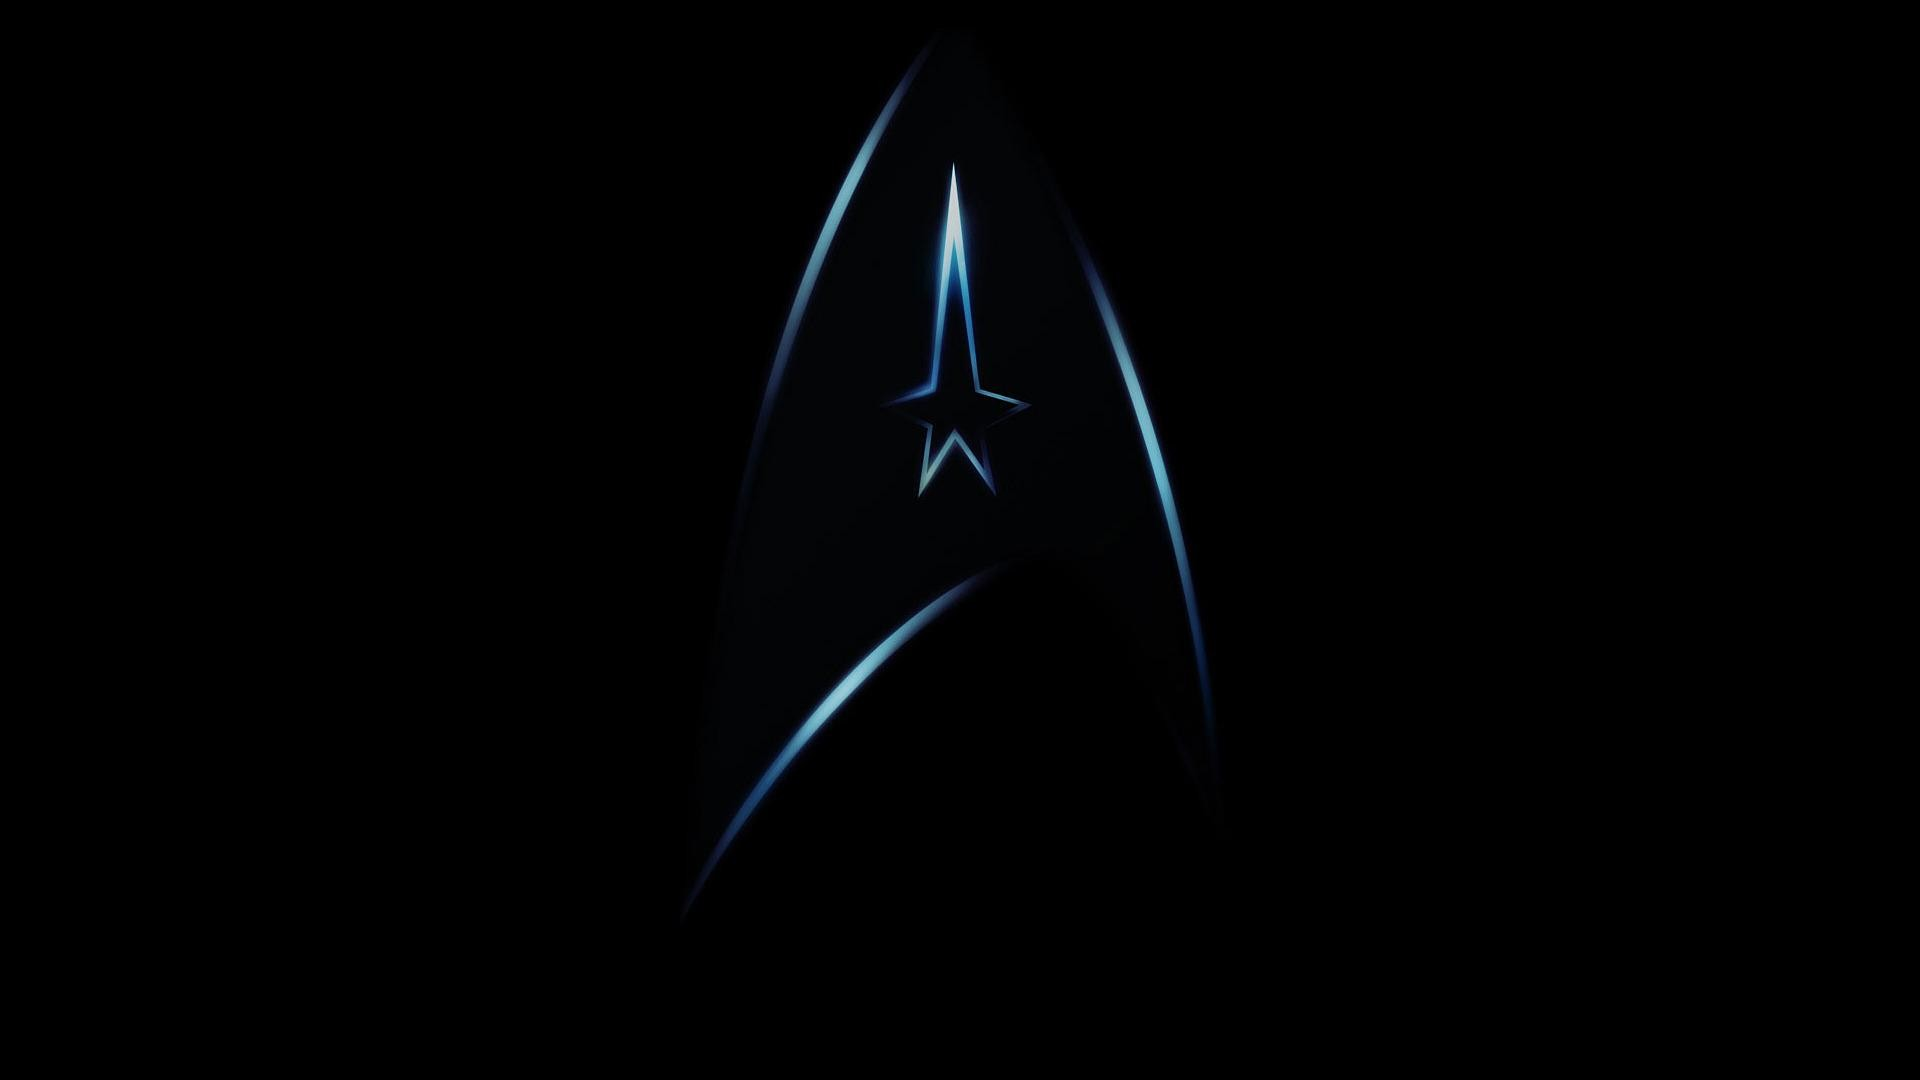 1920x1080 Download Star Trek Logos Wallpaper  Full HD Wallpapers